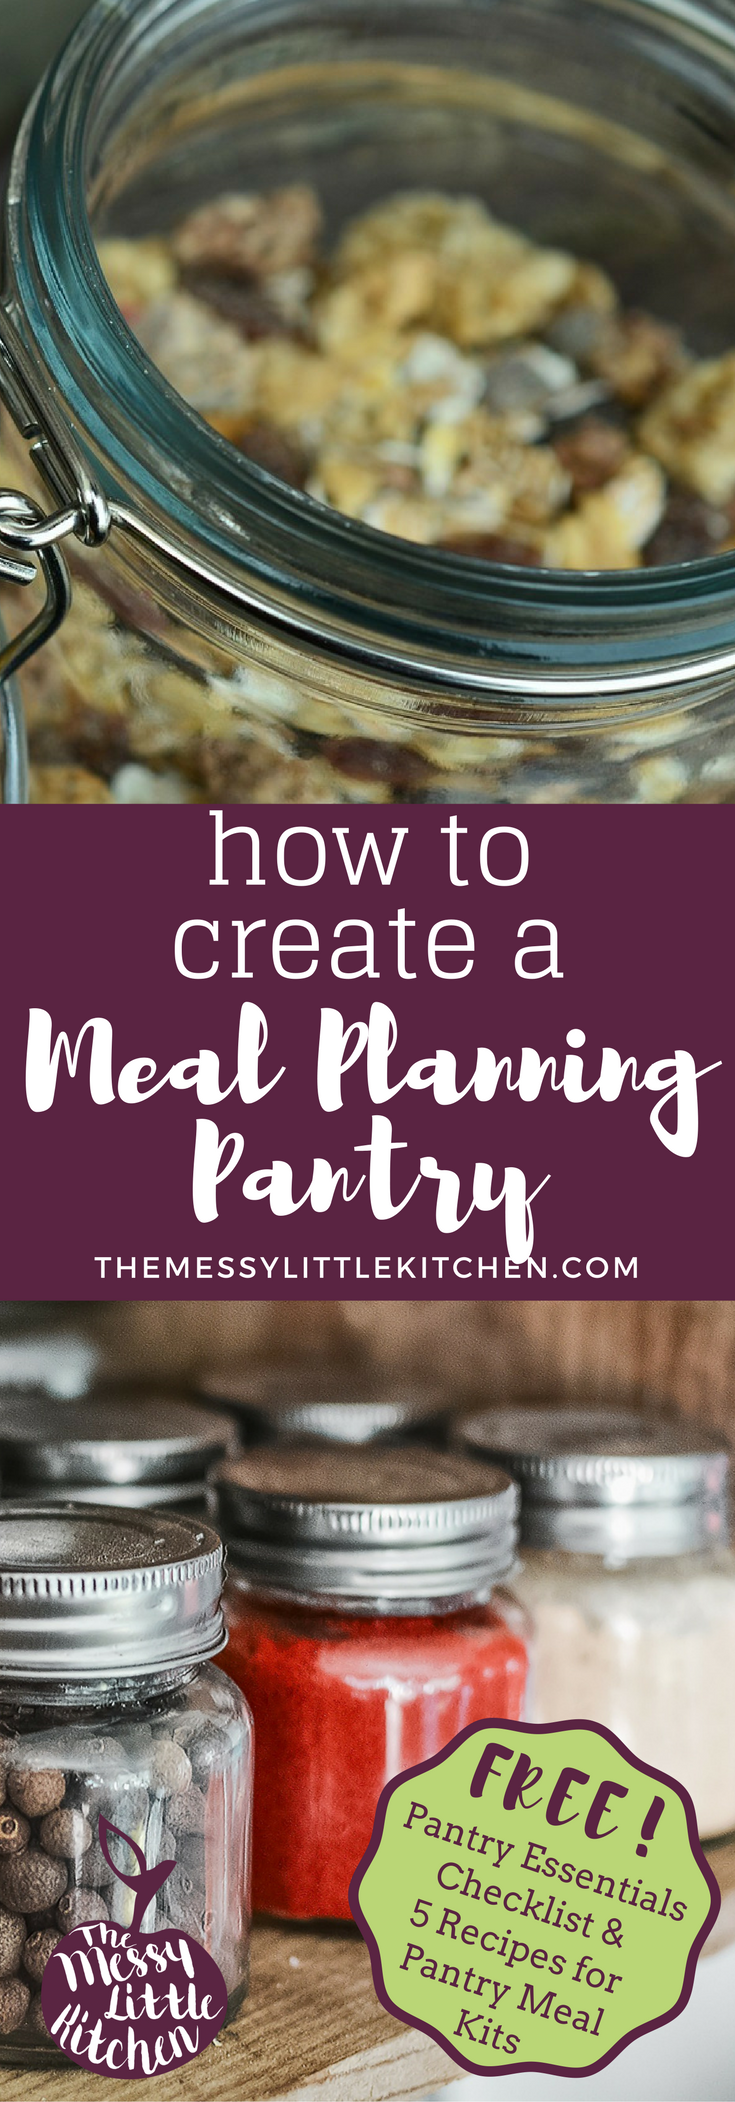 """How to Create a Meal Planning Pantry: Family life is busy, and having a well stocked pantry with some essential inventory items takes the pressure out of cooking. Let your pantry be your guide for family meals! Free """"Pantry Essentials Checklist"""" & """"5 Pantry Meal-Kit Recipes"""" for when you need something to eat in a pinch!"""